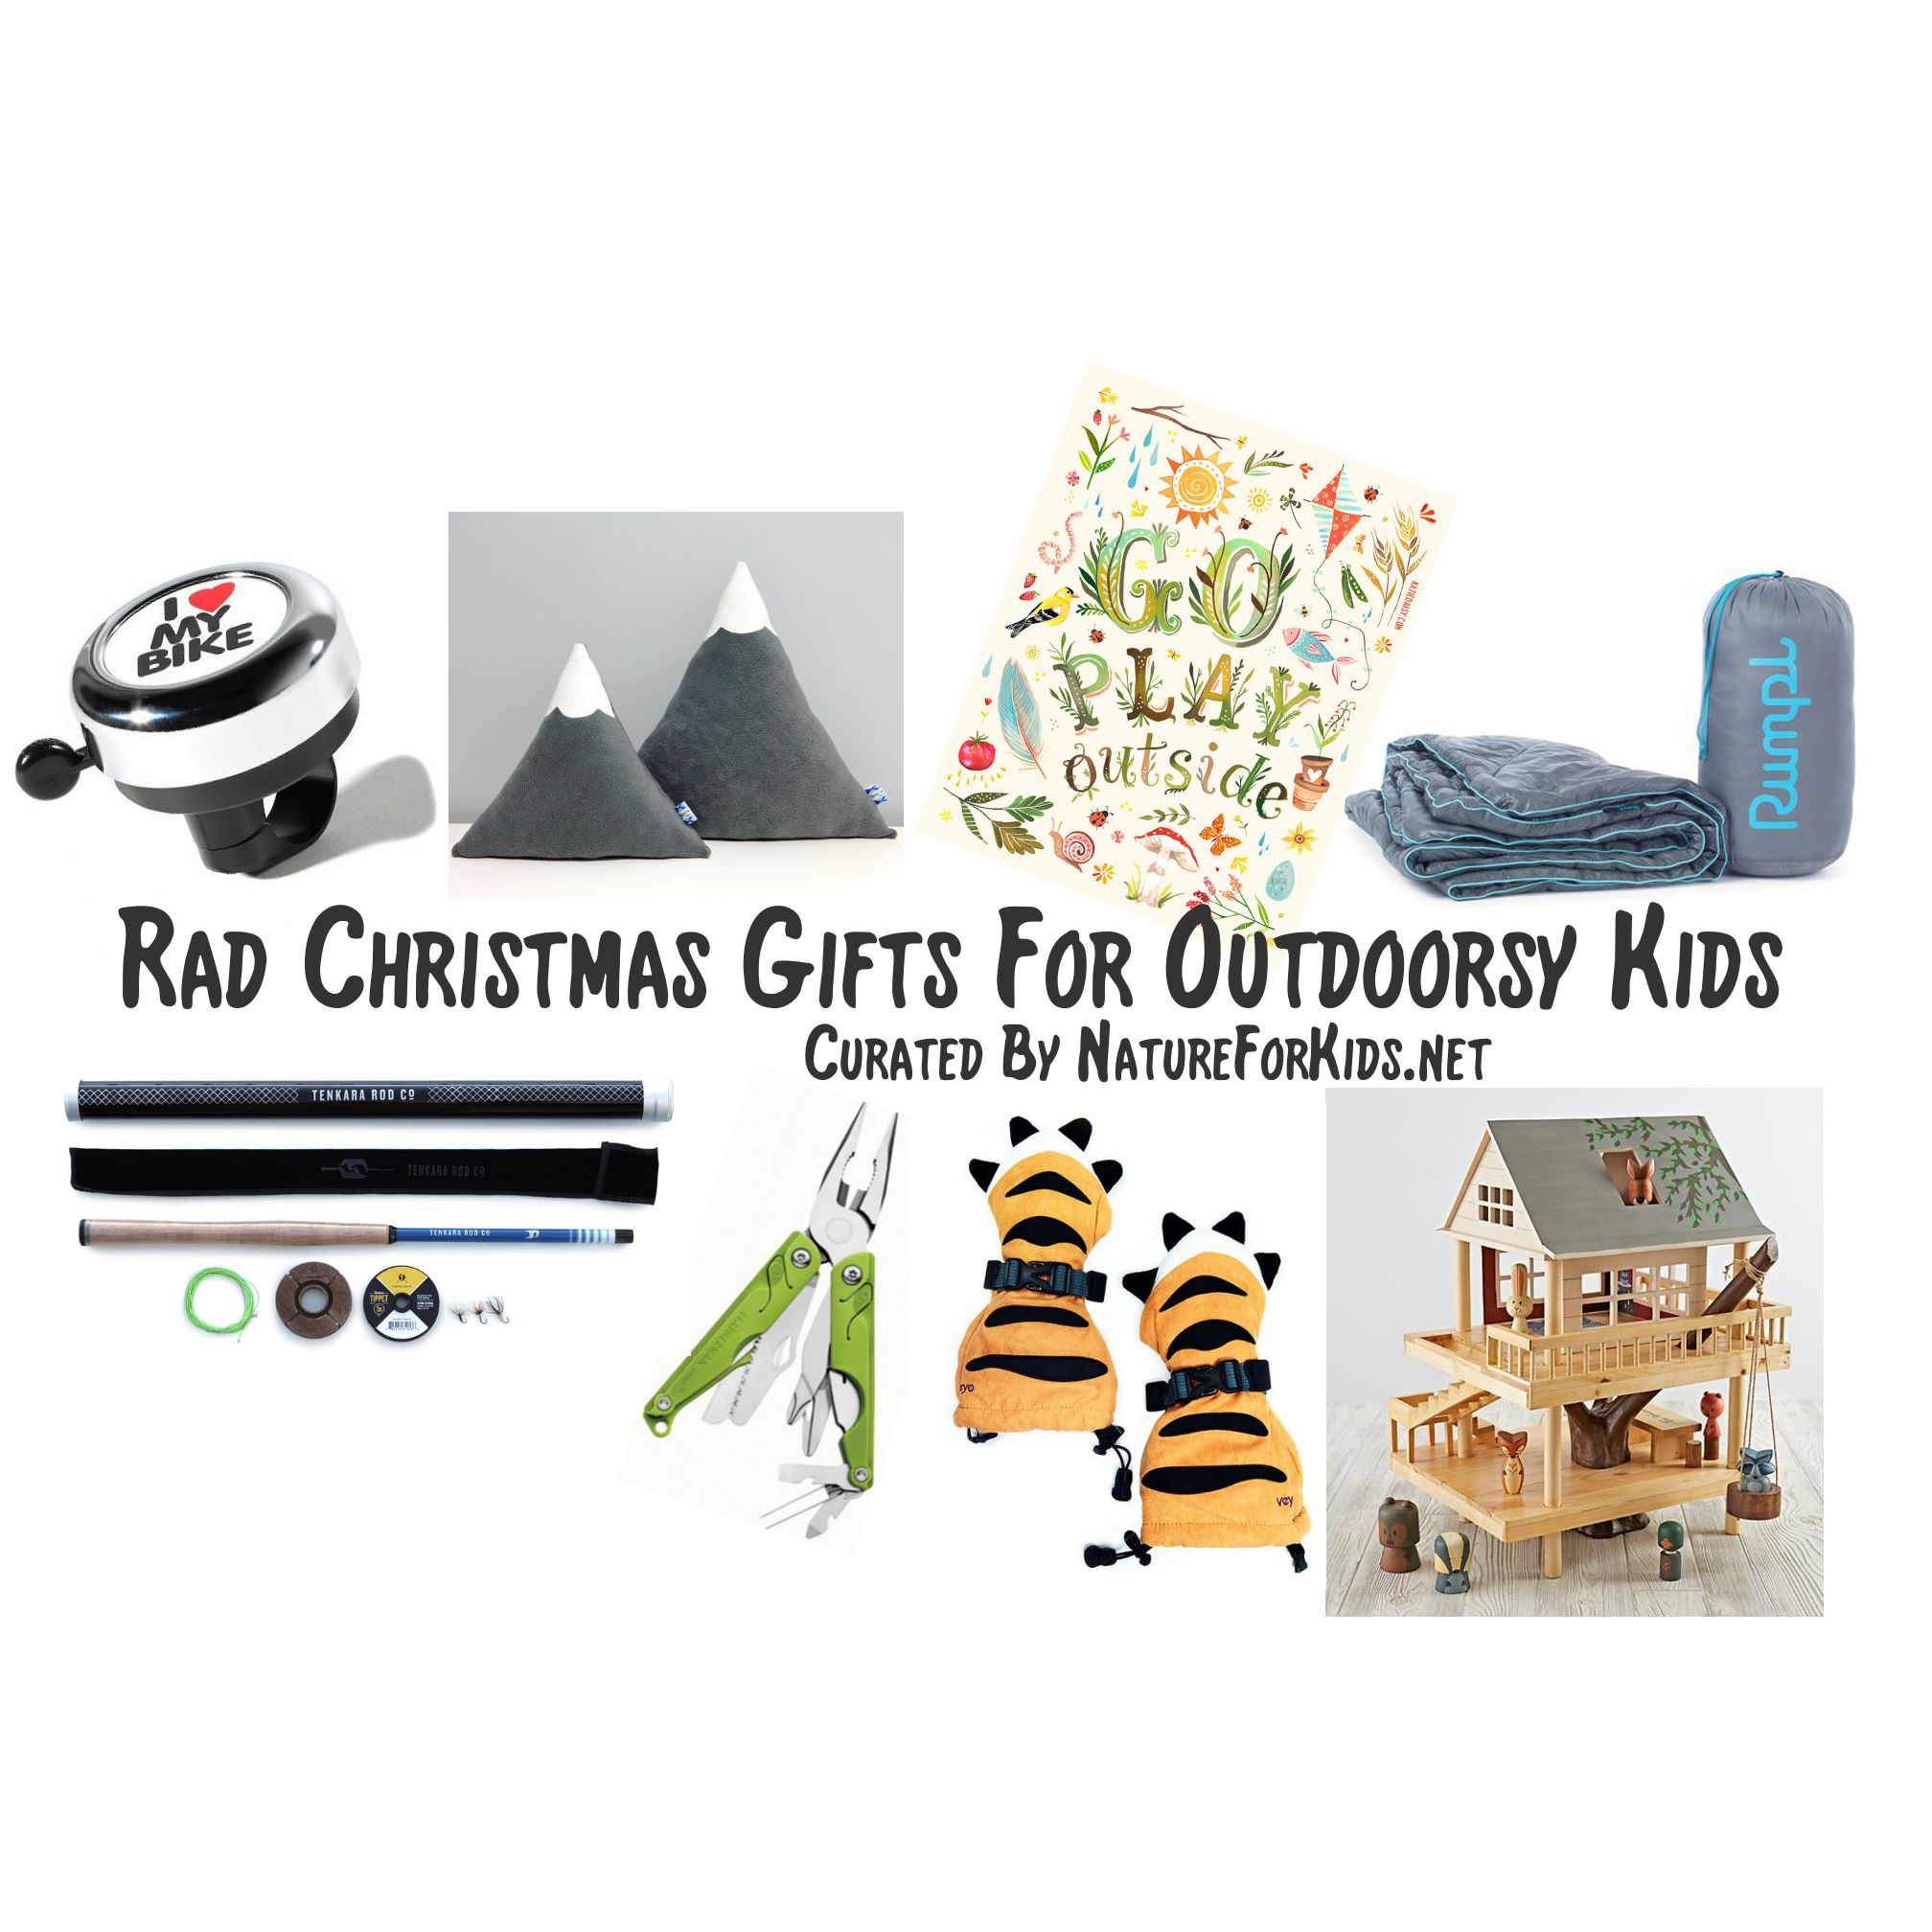 rad gifts for outdoorsy kids nature for kids - Christmas Gifts For Outdoorsmen